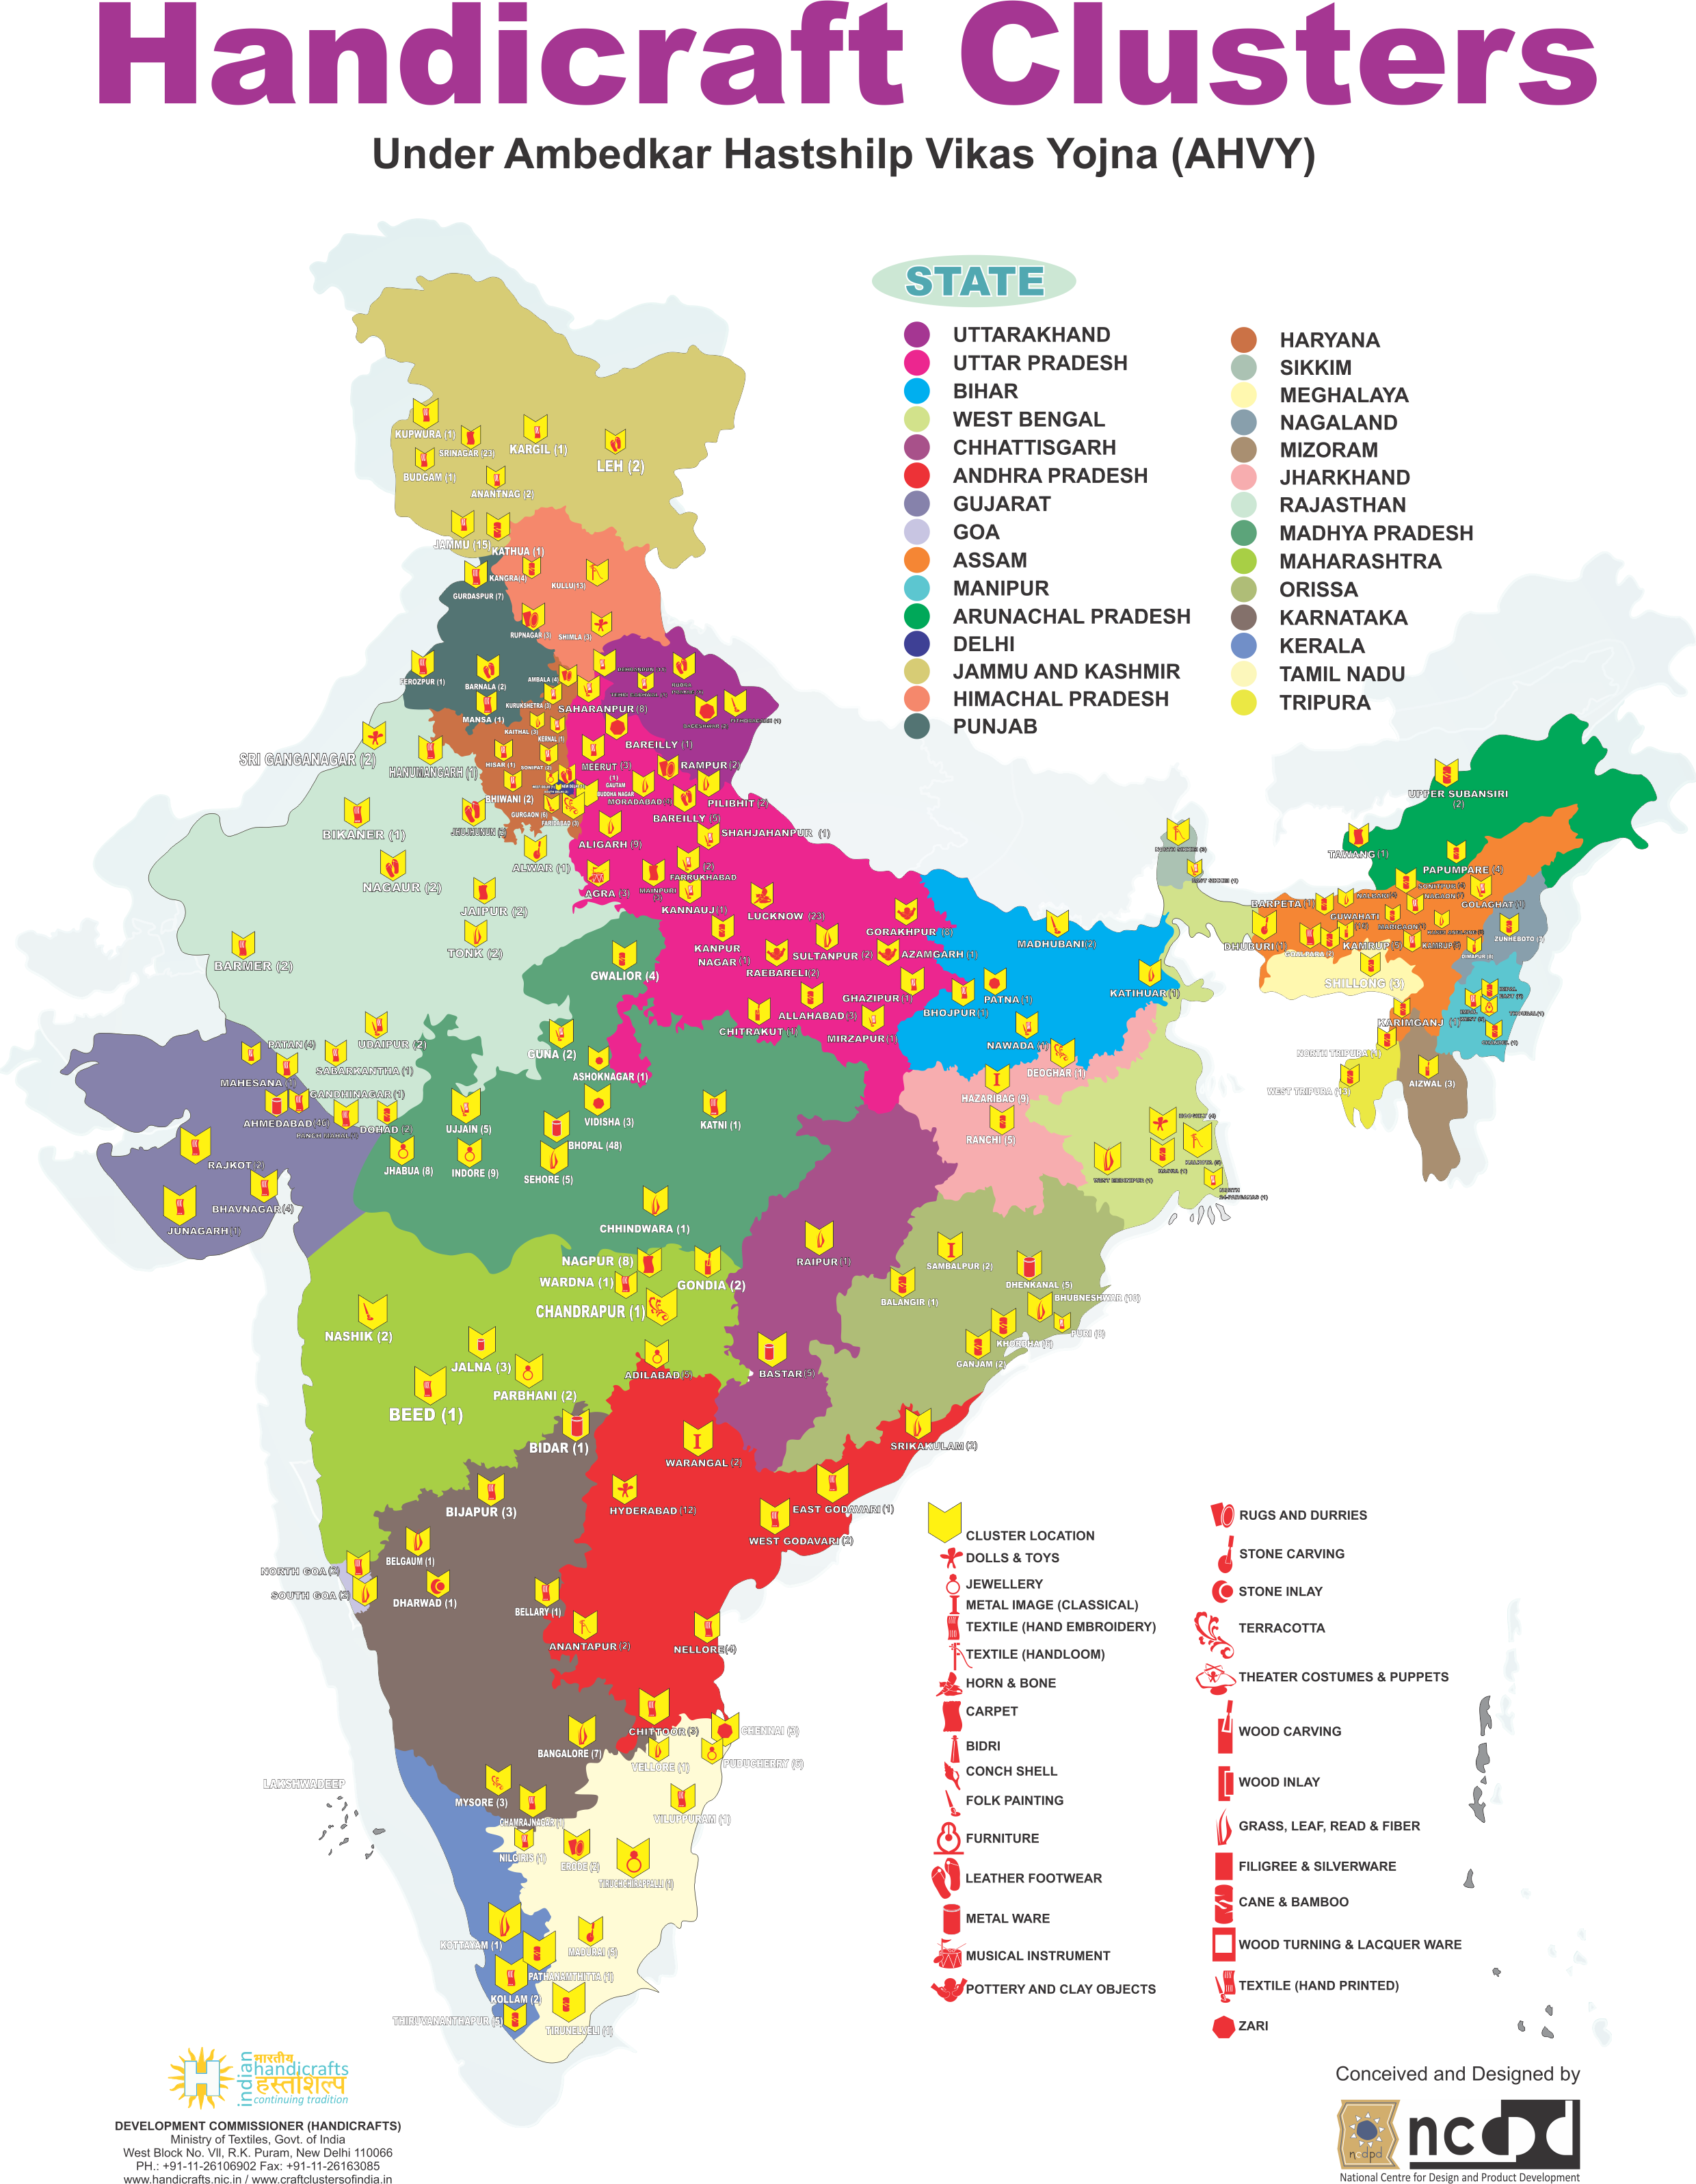 Survey Amp Studies Handicrafts Clusters Location Map Of